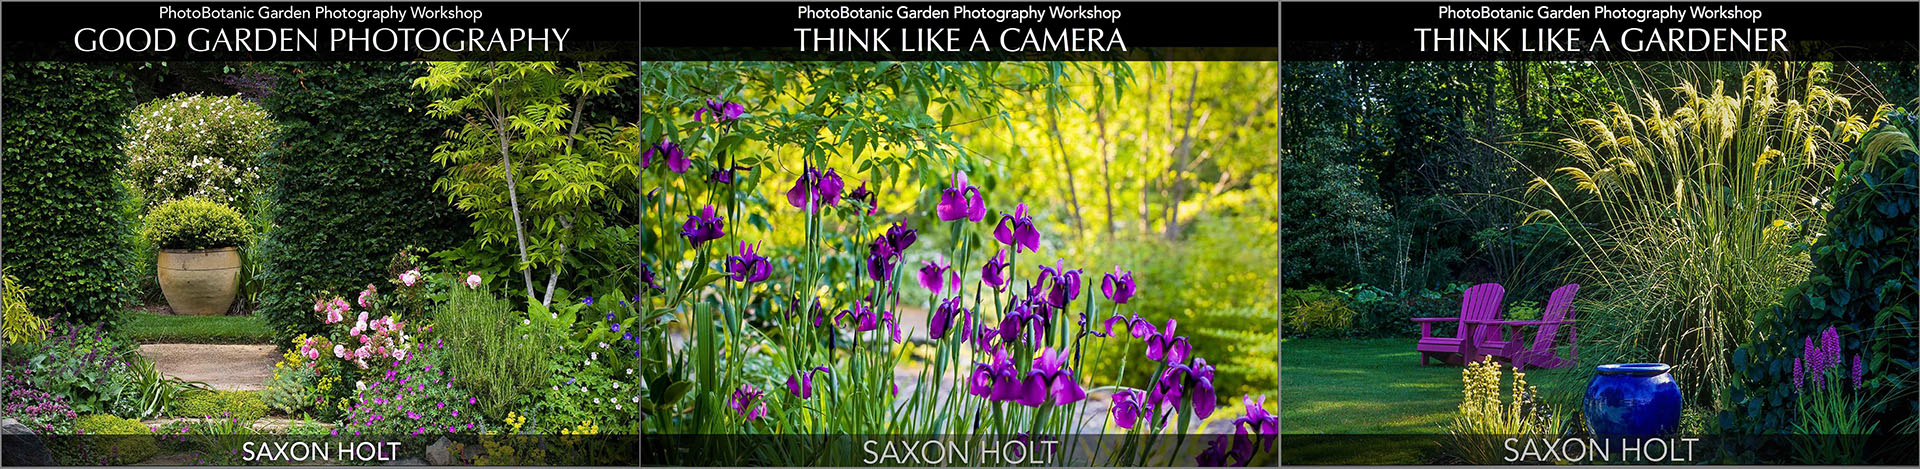 PhotoBotanic Garden Photography Workshop Ebooks